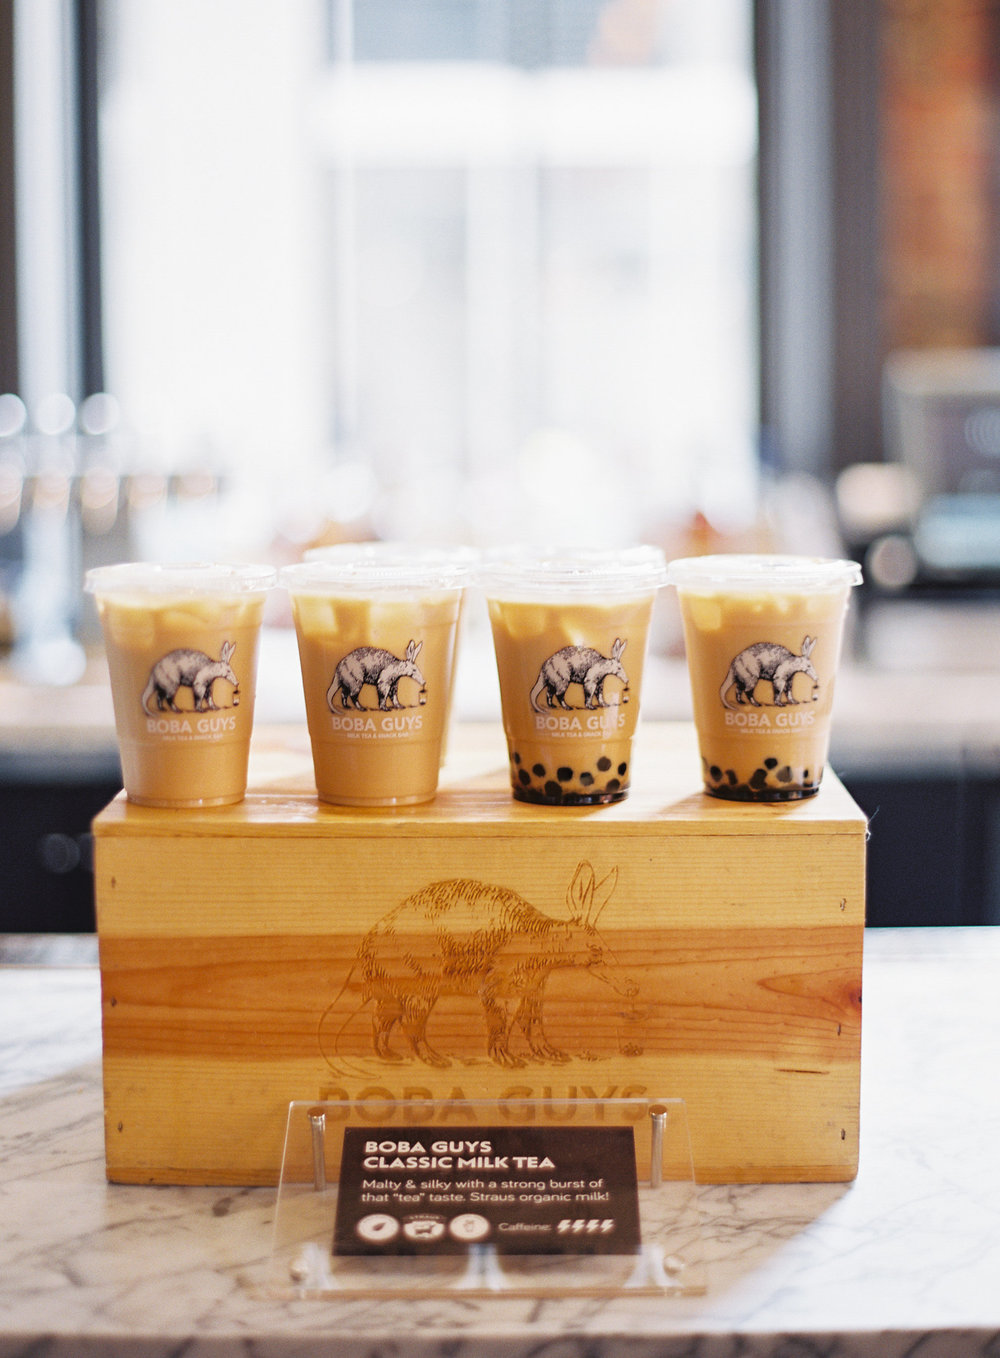 Guests were greeted at the door by sweet and refreshing milk tea from  Boba Guys  - best welcome drink idea ever.